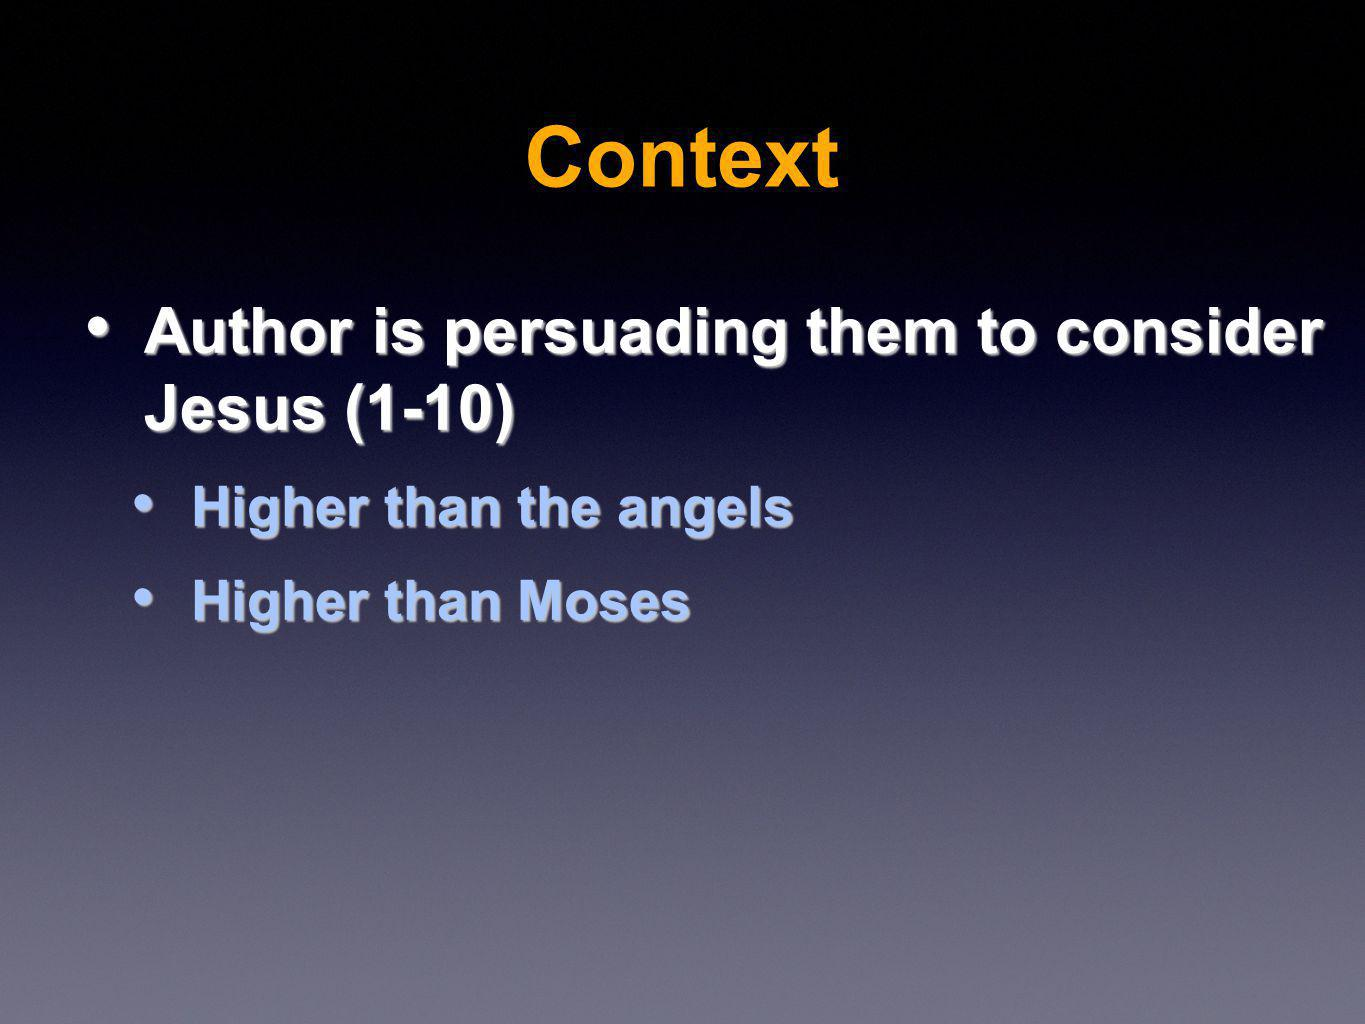 Author is persuading them to consider Jesus (1-10) Author is persuading them to consider Jesus (1-10) Higher than the angels Higher than the angels Higher than Moses Higher than Moses Context